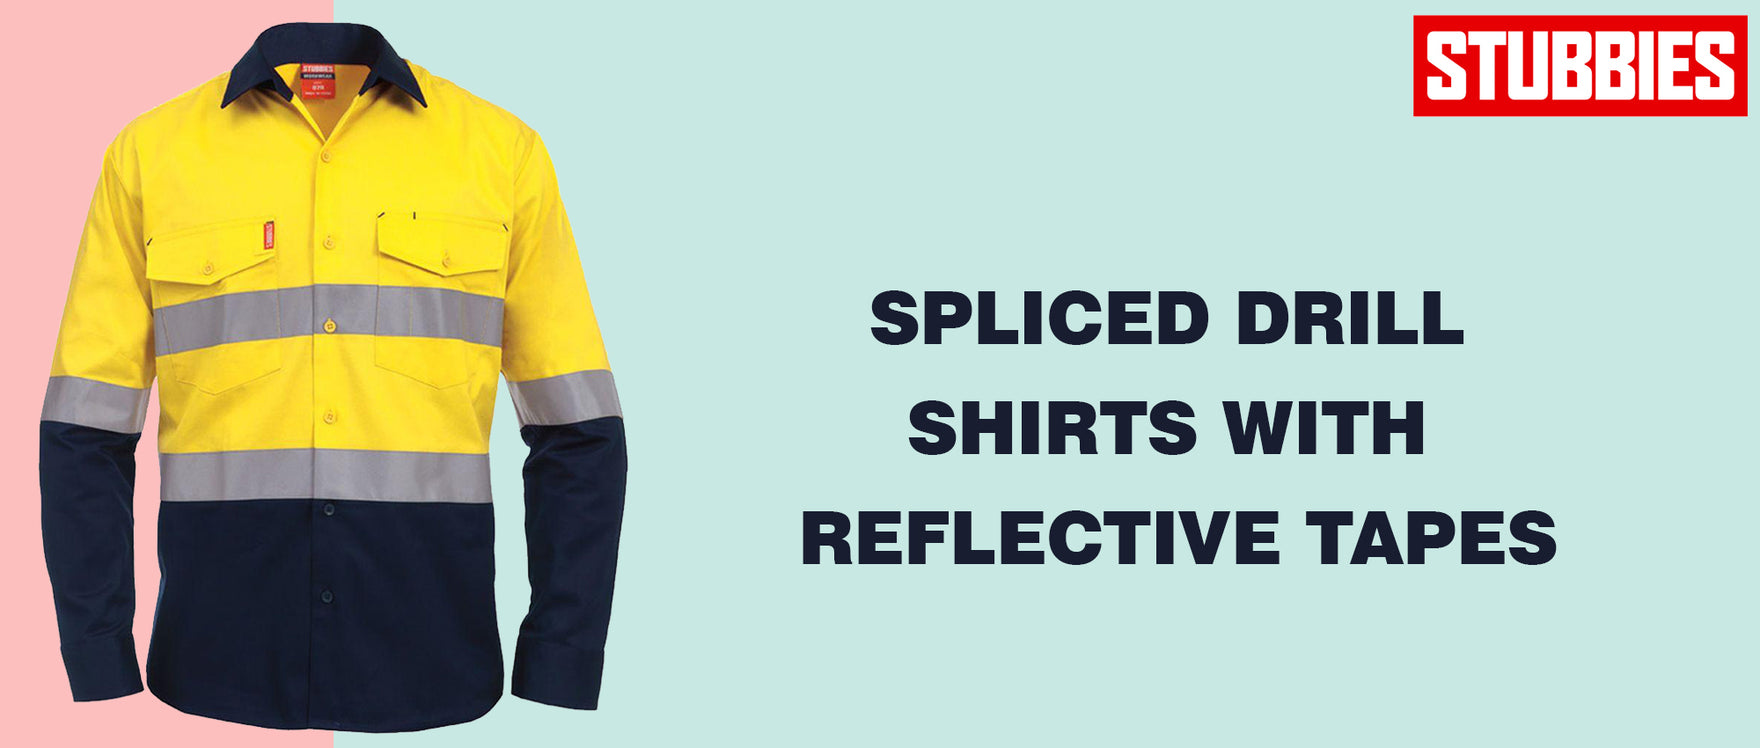 Spliced Drill Shirts with Reflective Tapes